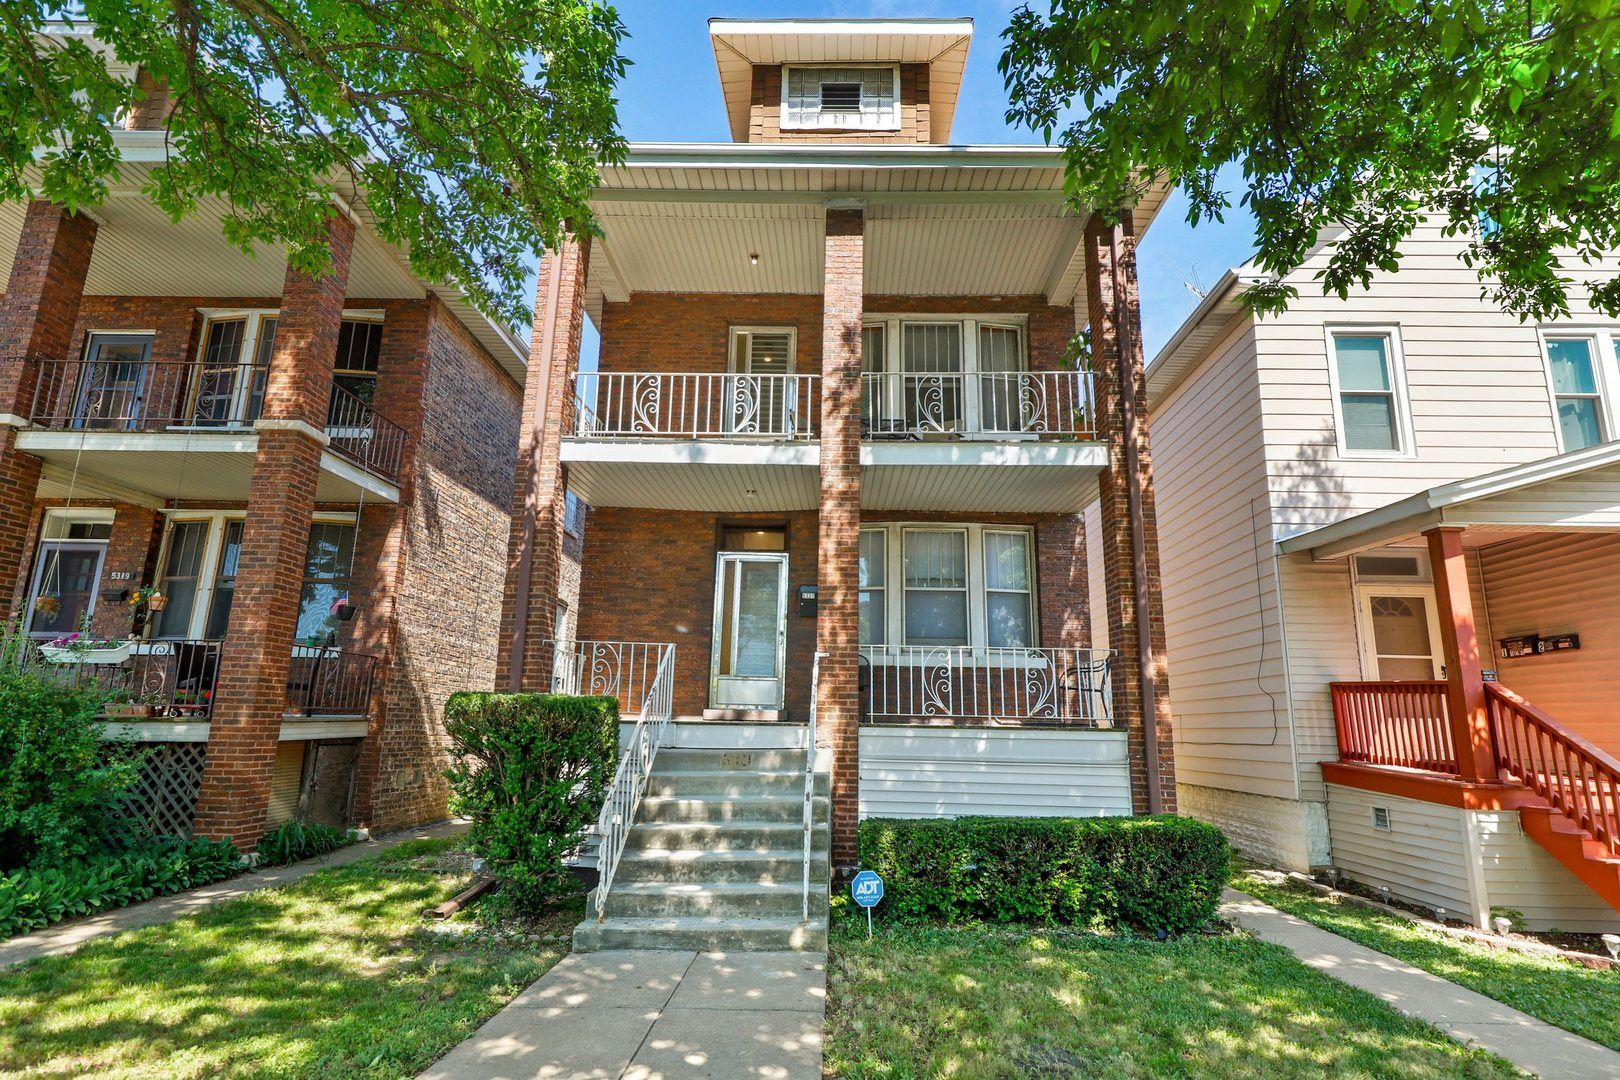 5321 S Lockwood Avenue, Chicago, IL 60638 - #: 10738421